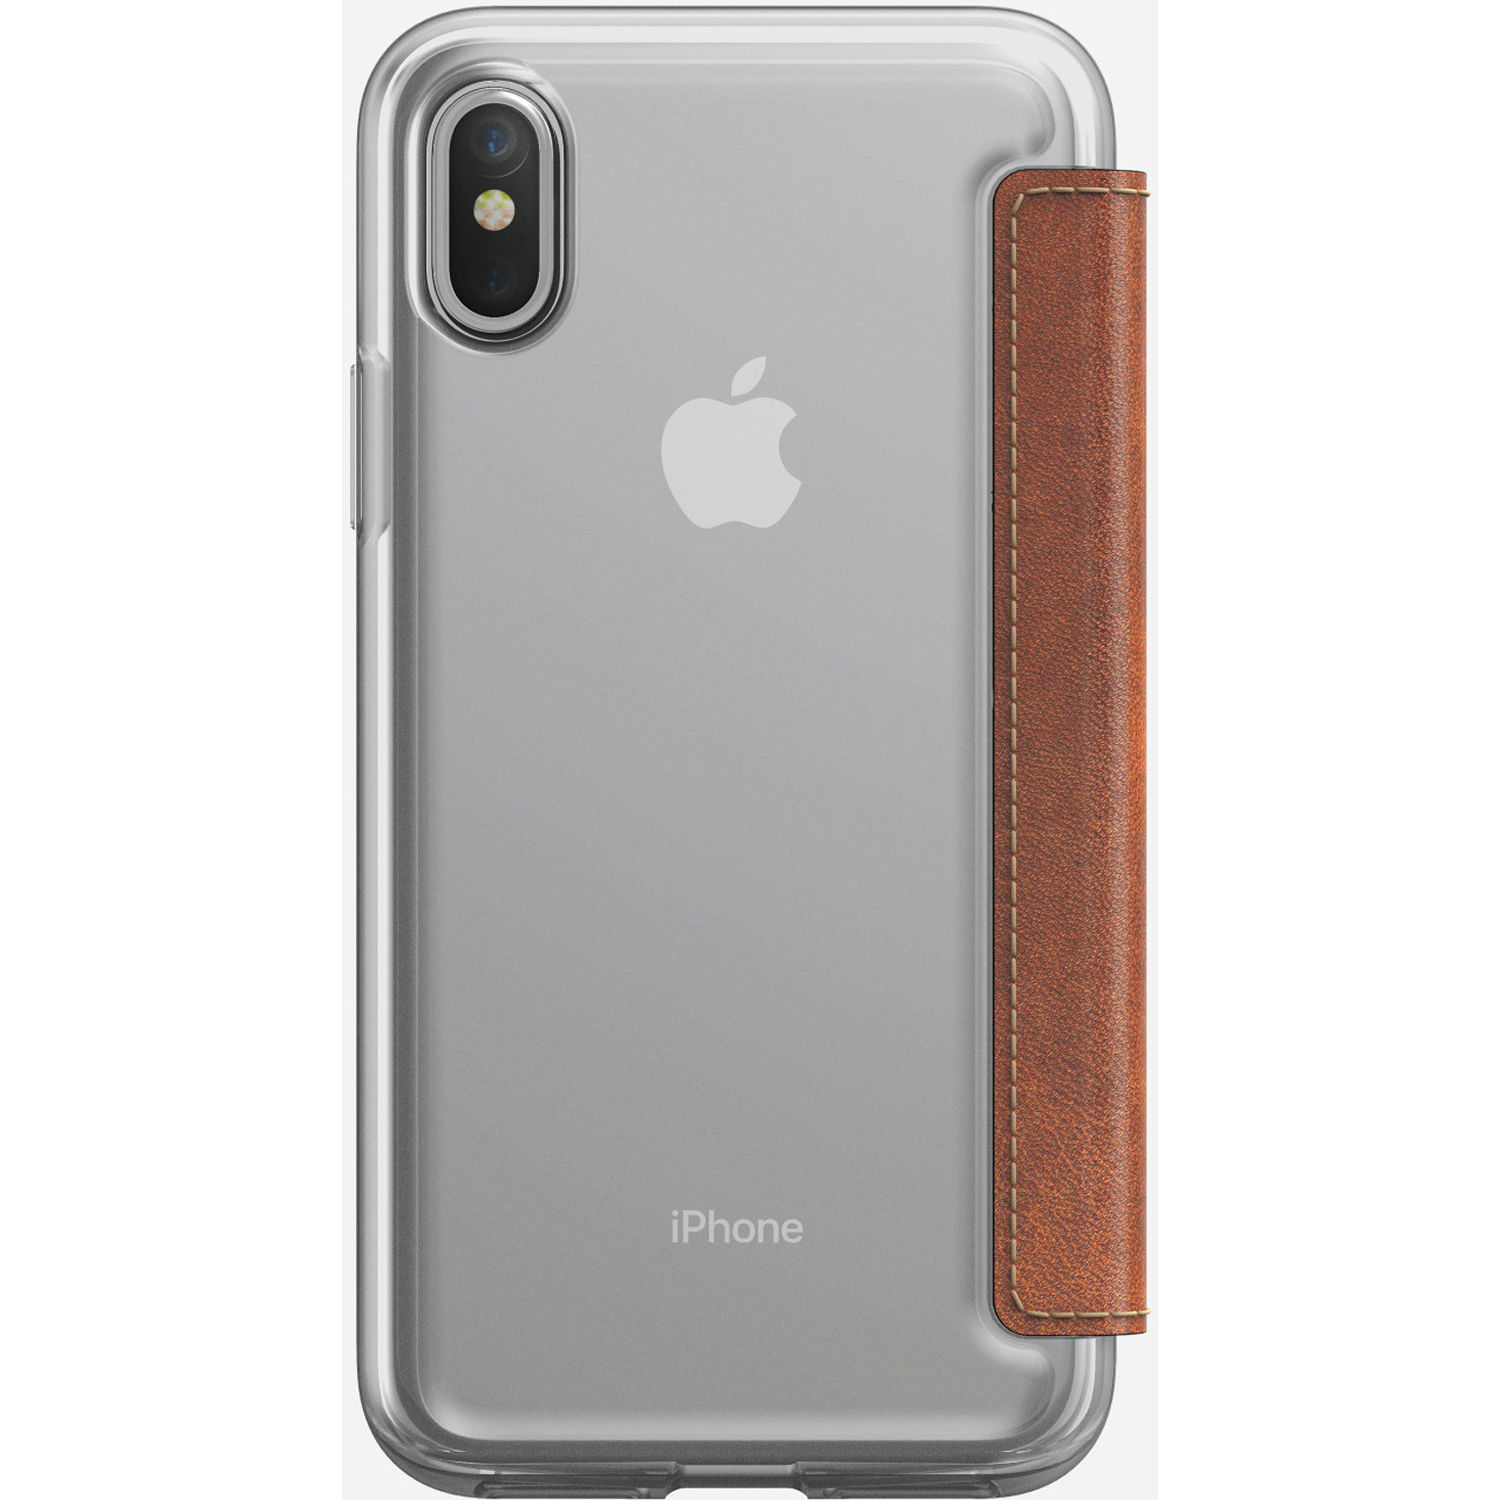 reputable site bfb27 e9dd2 Nomad Clear Folio Case for iPhone X (Rustic Brown)